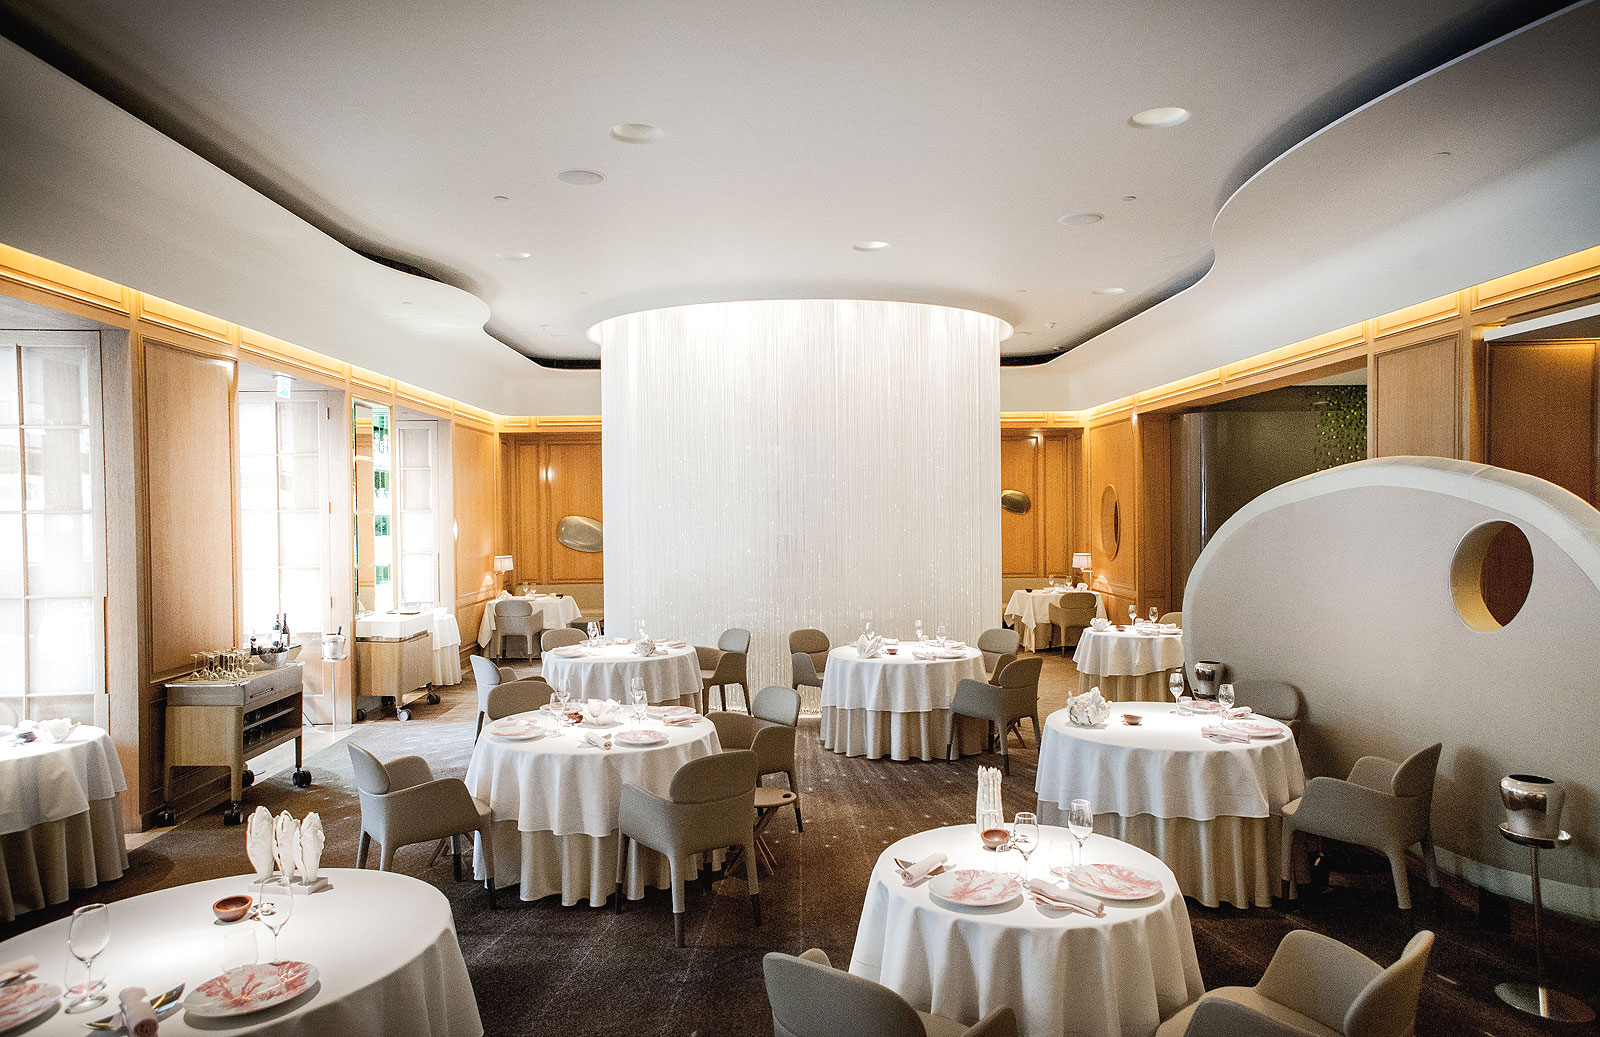 Alain Ducasse at The Dorchester - London